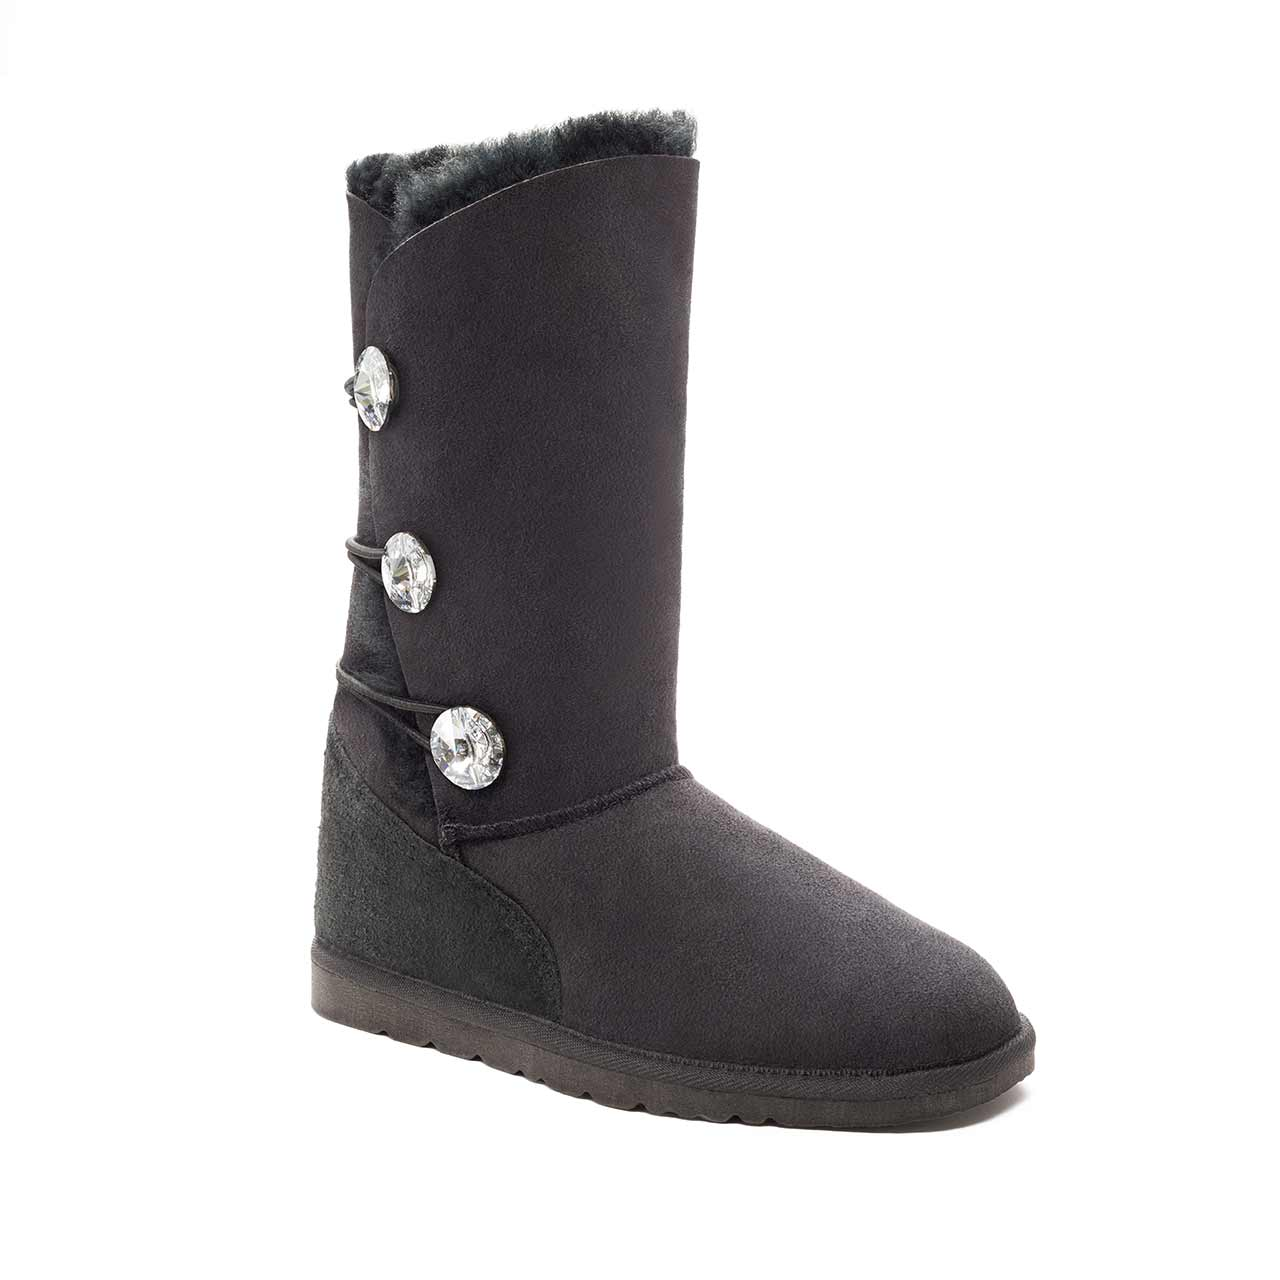 Zsa Zsa Long Boots - Womens - Discontinued Stock | The One and Only | Ugg Australia®